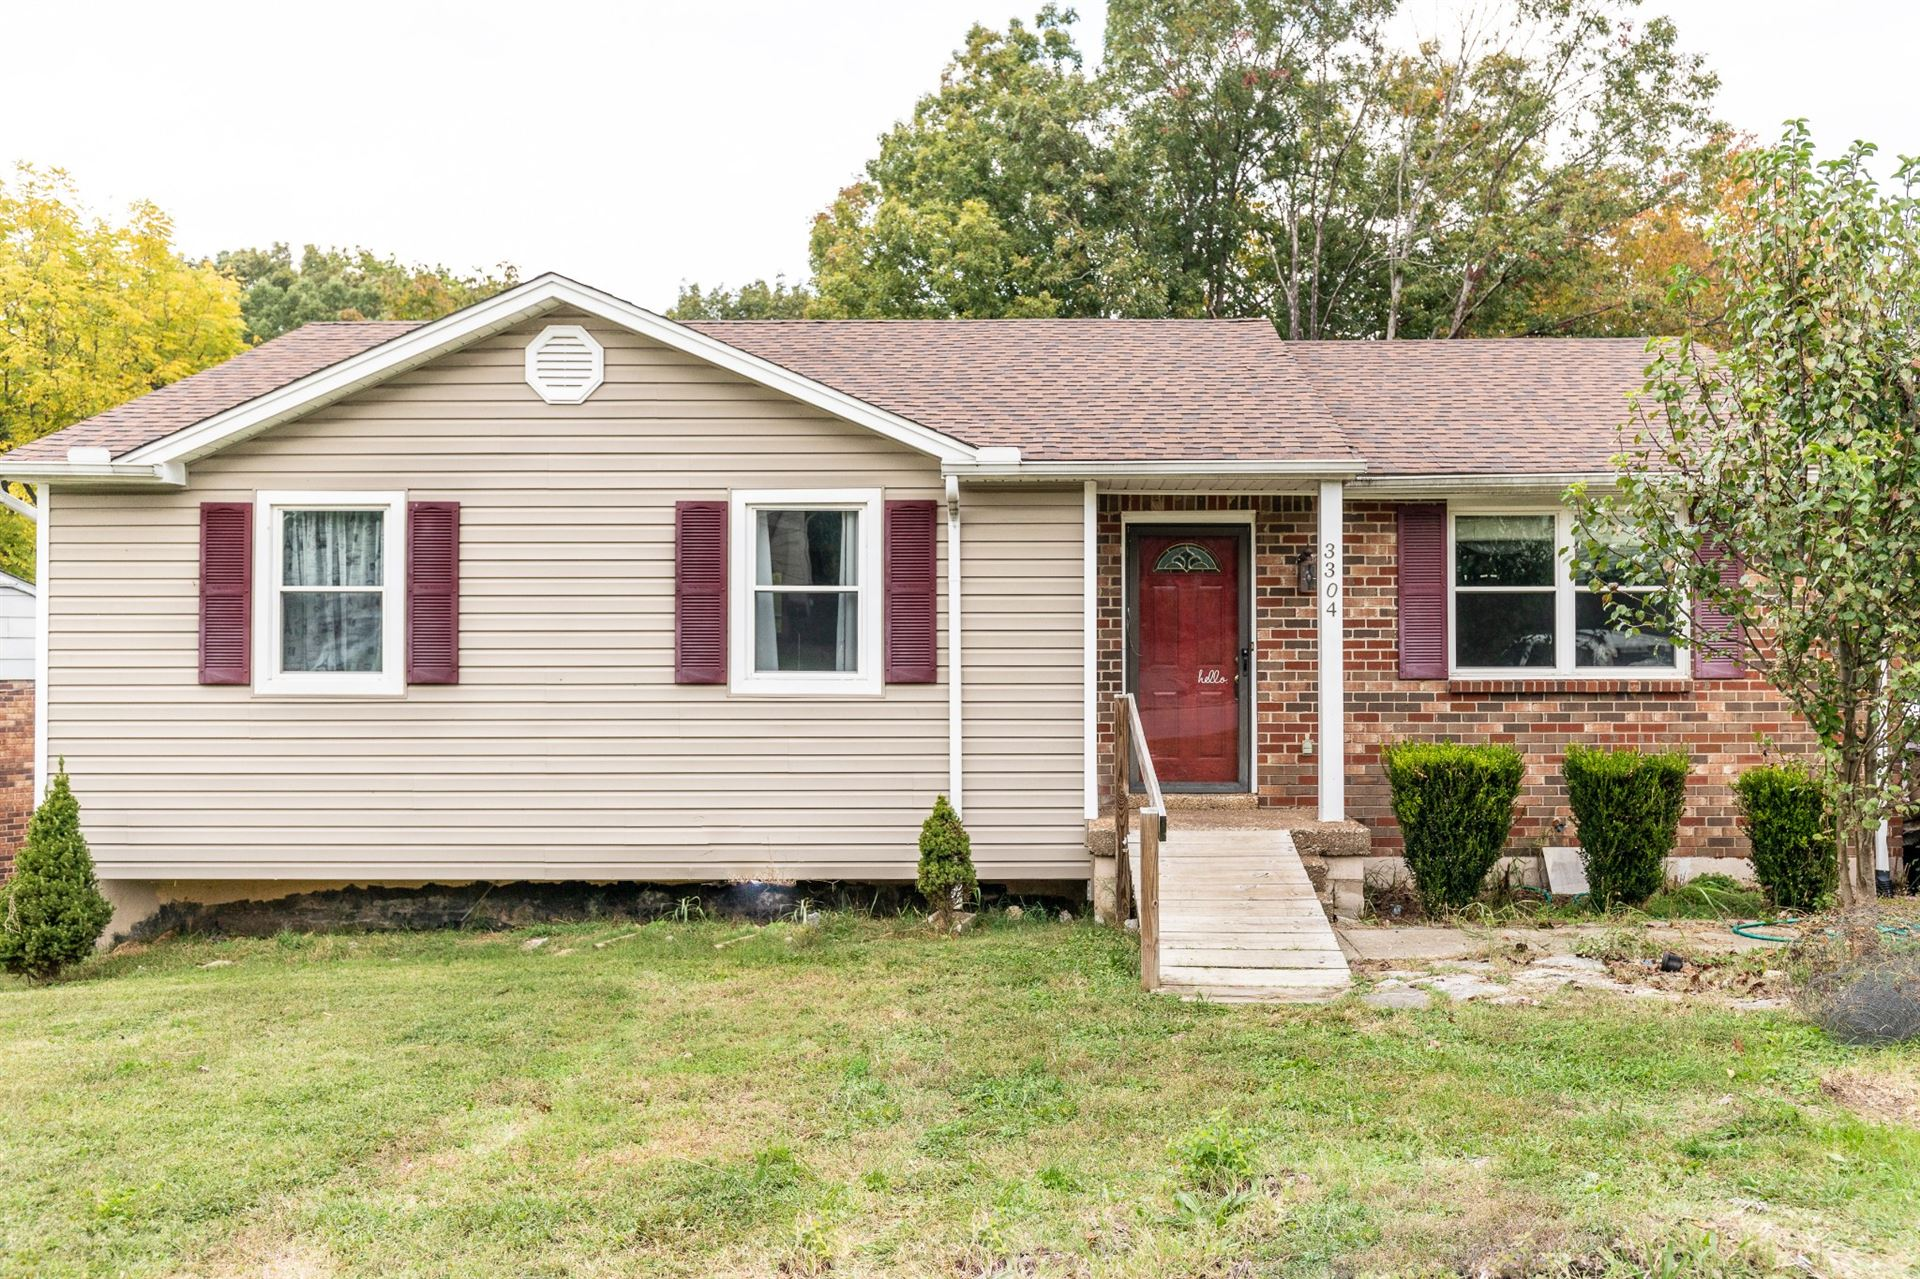 3304 Towne Ridge Dr, Antioch, TN 37013 - MLS#: 2198061